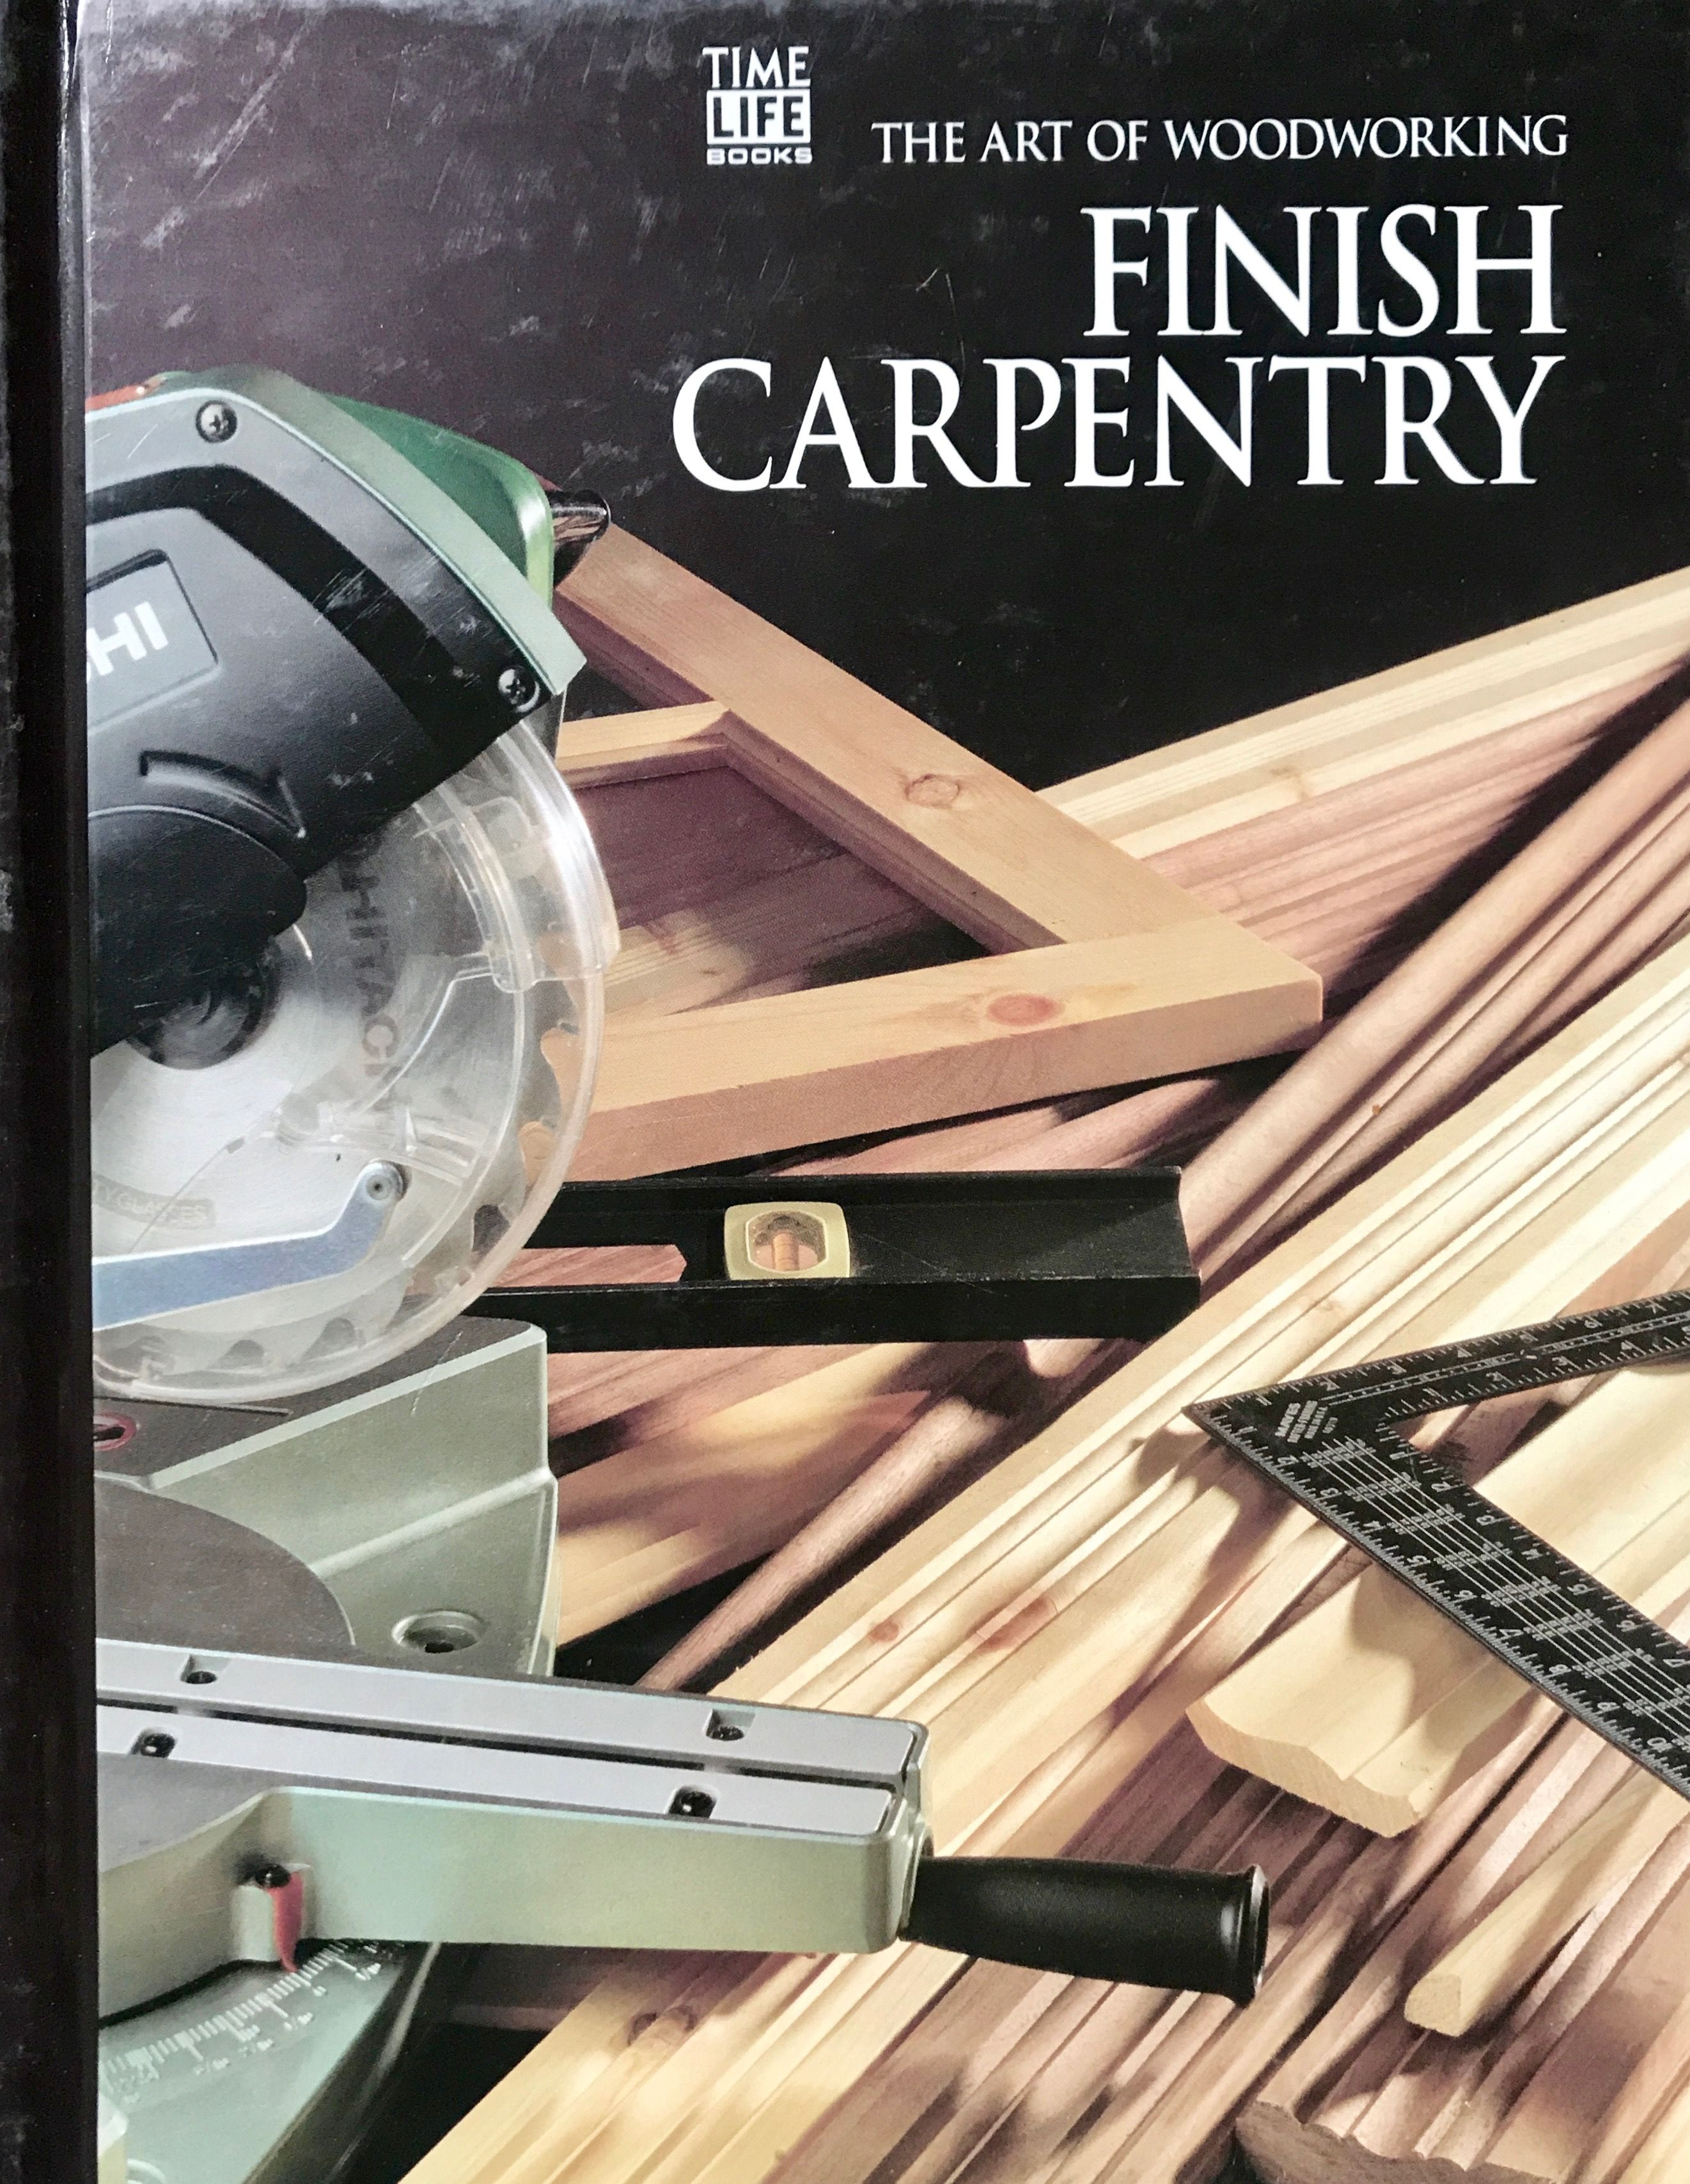 BOOK FINISH CARPENTRY